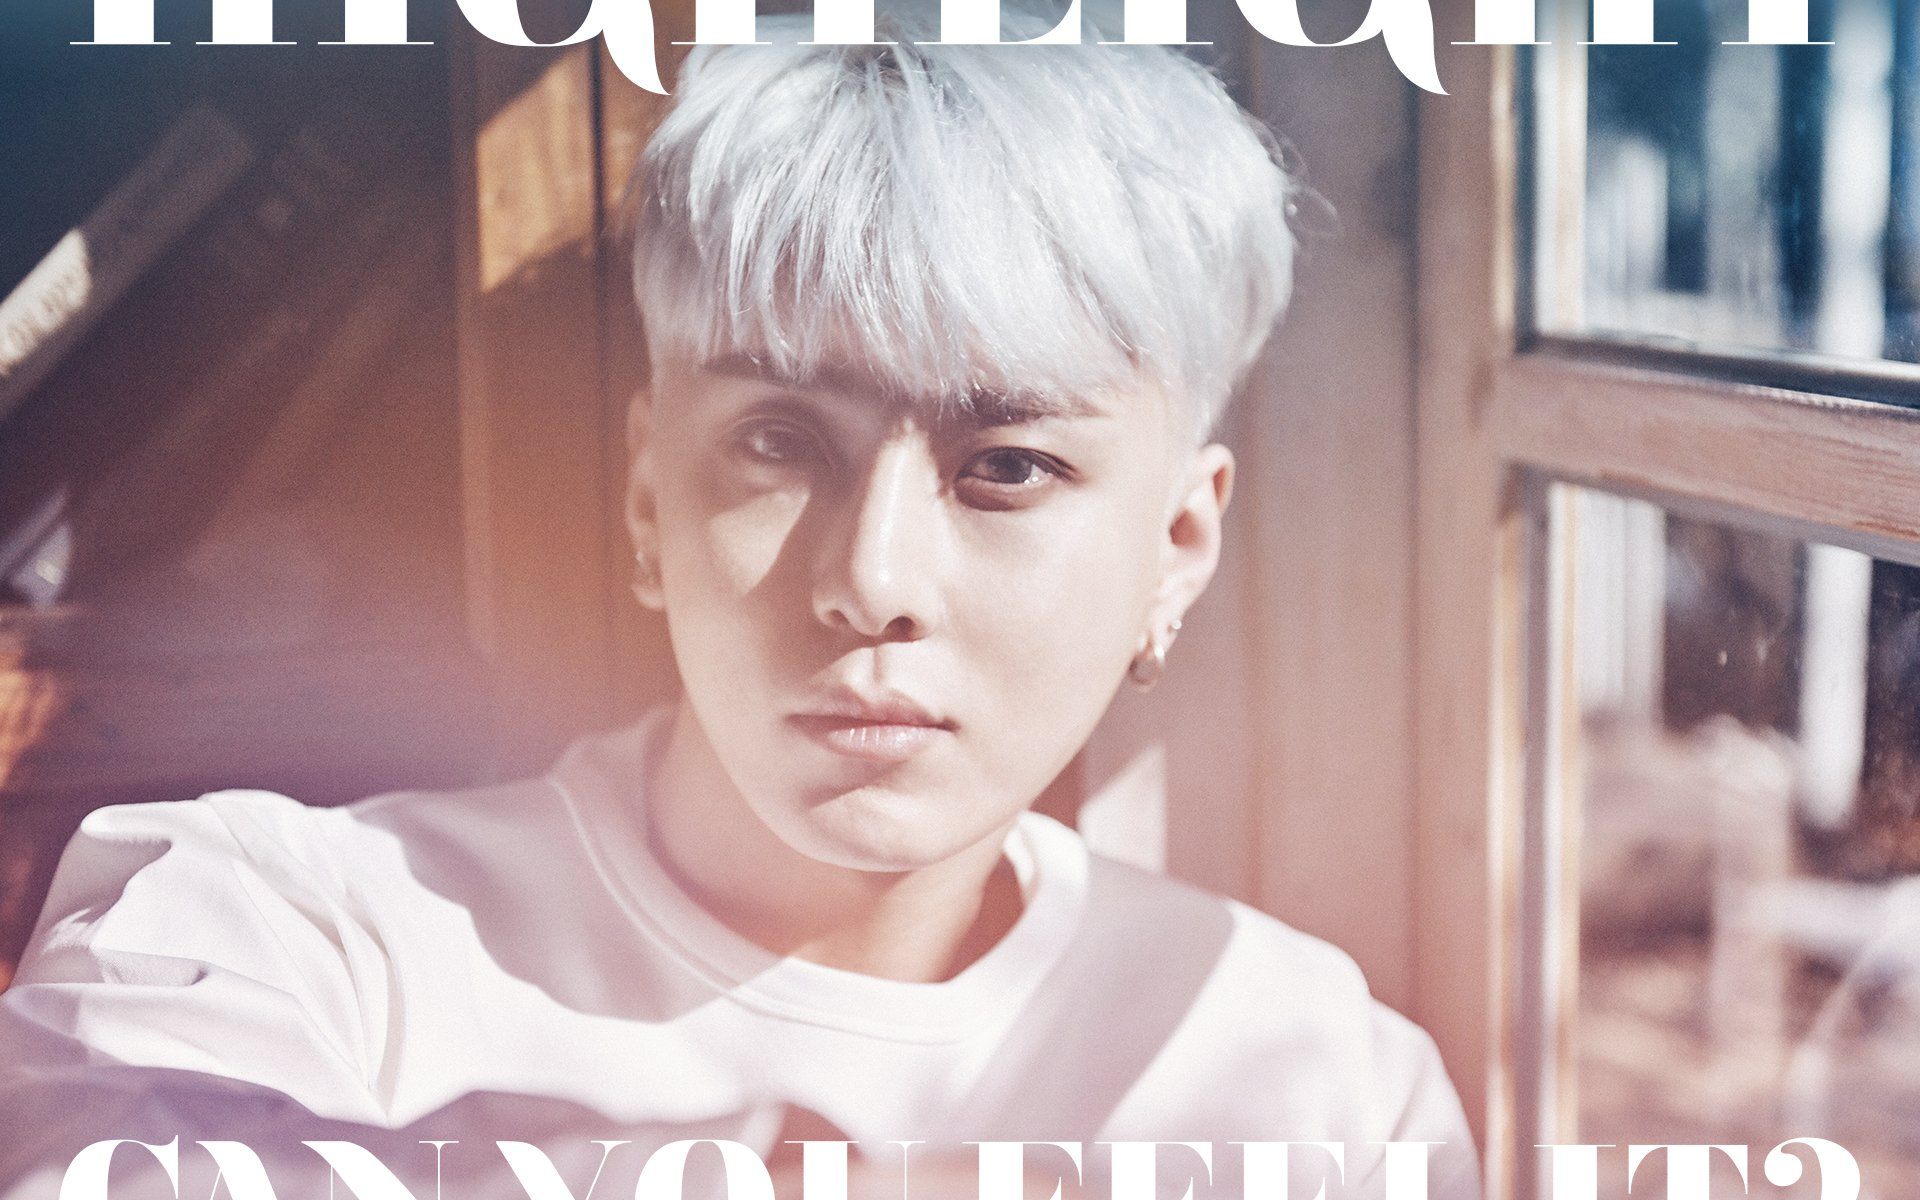 Highlight's Yong Junhyung Reported To Make Solo Comeback + Agency Responds